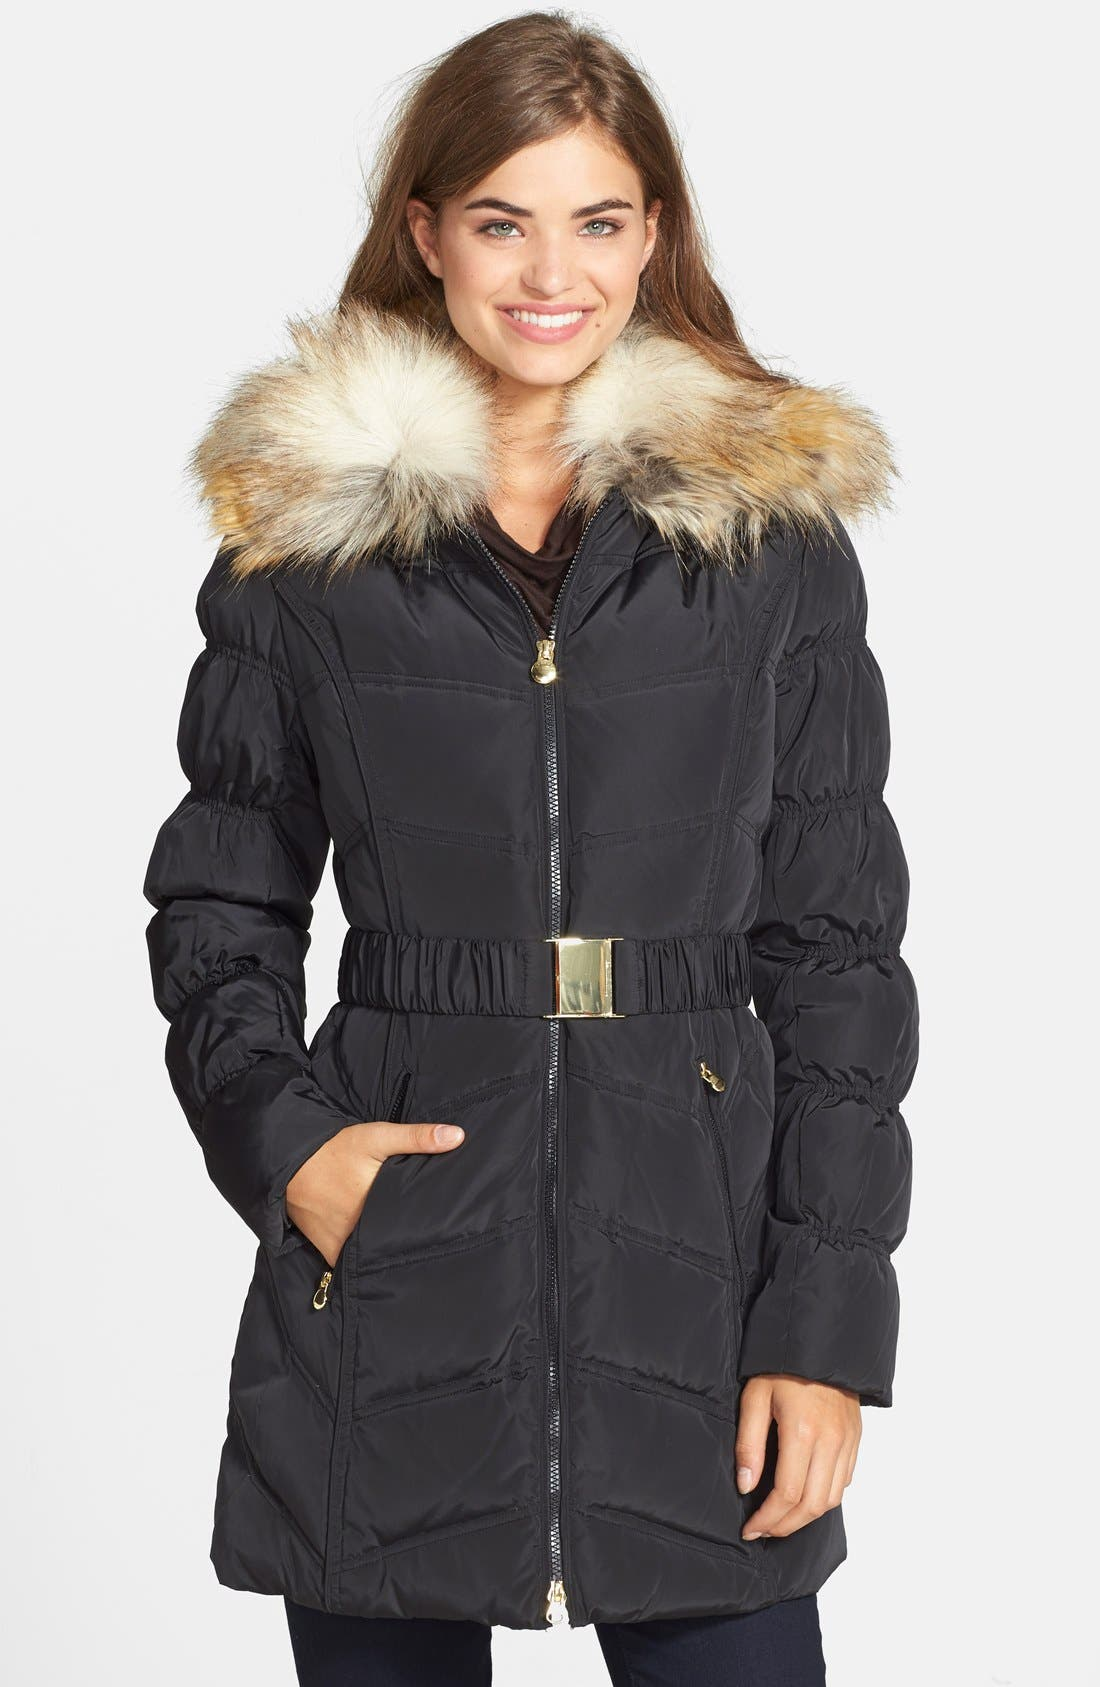 Alternate Image 1 Selected - Laundry by Shelli Segal Belted Puffer Coat with Faux Fur Trim